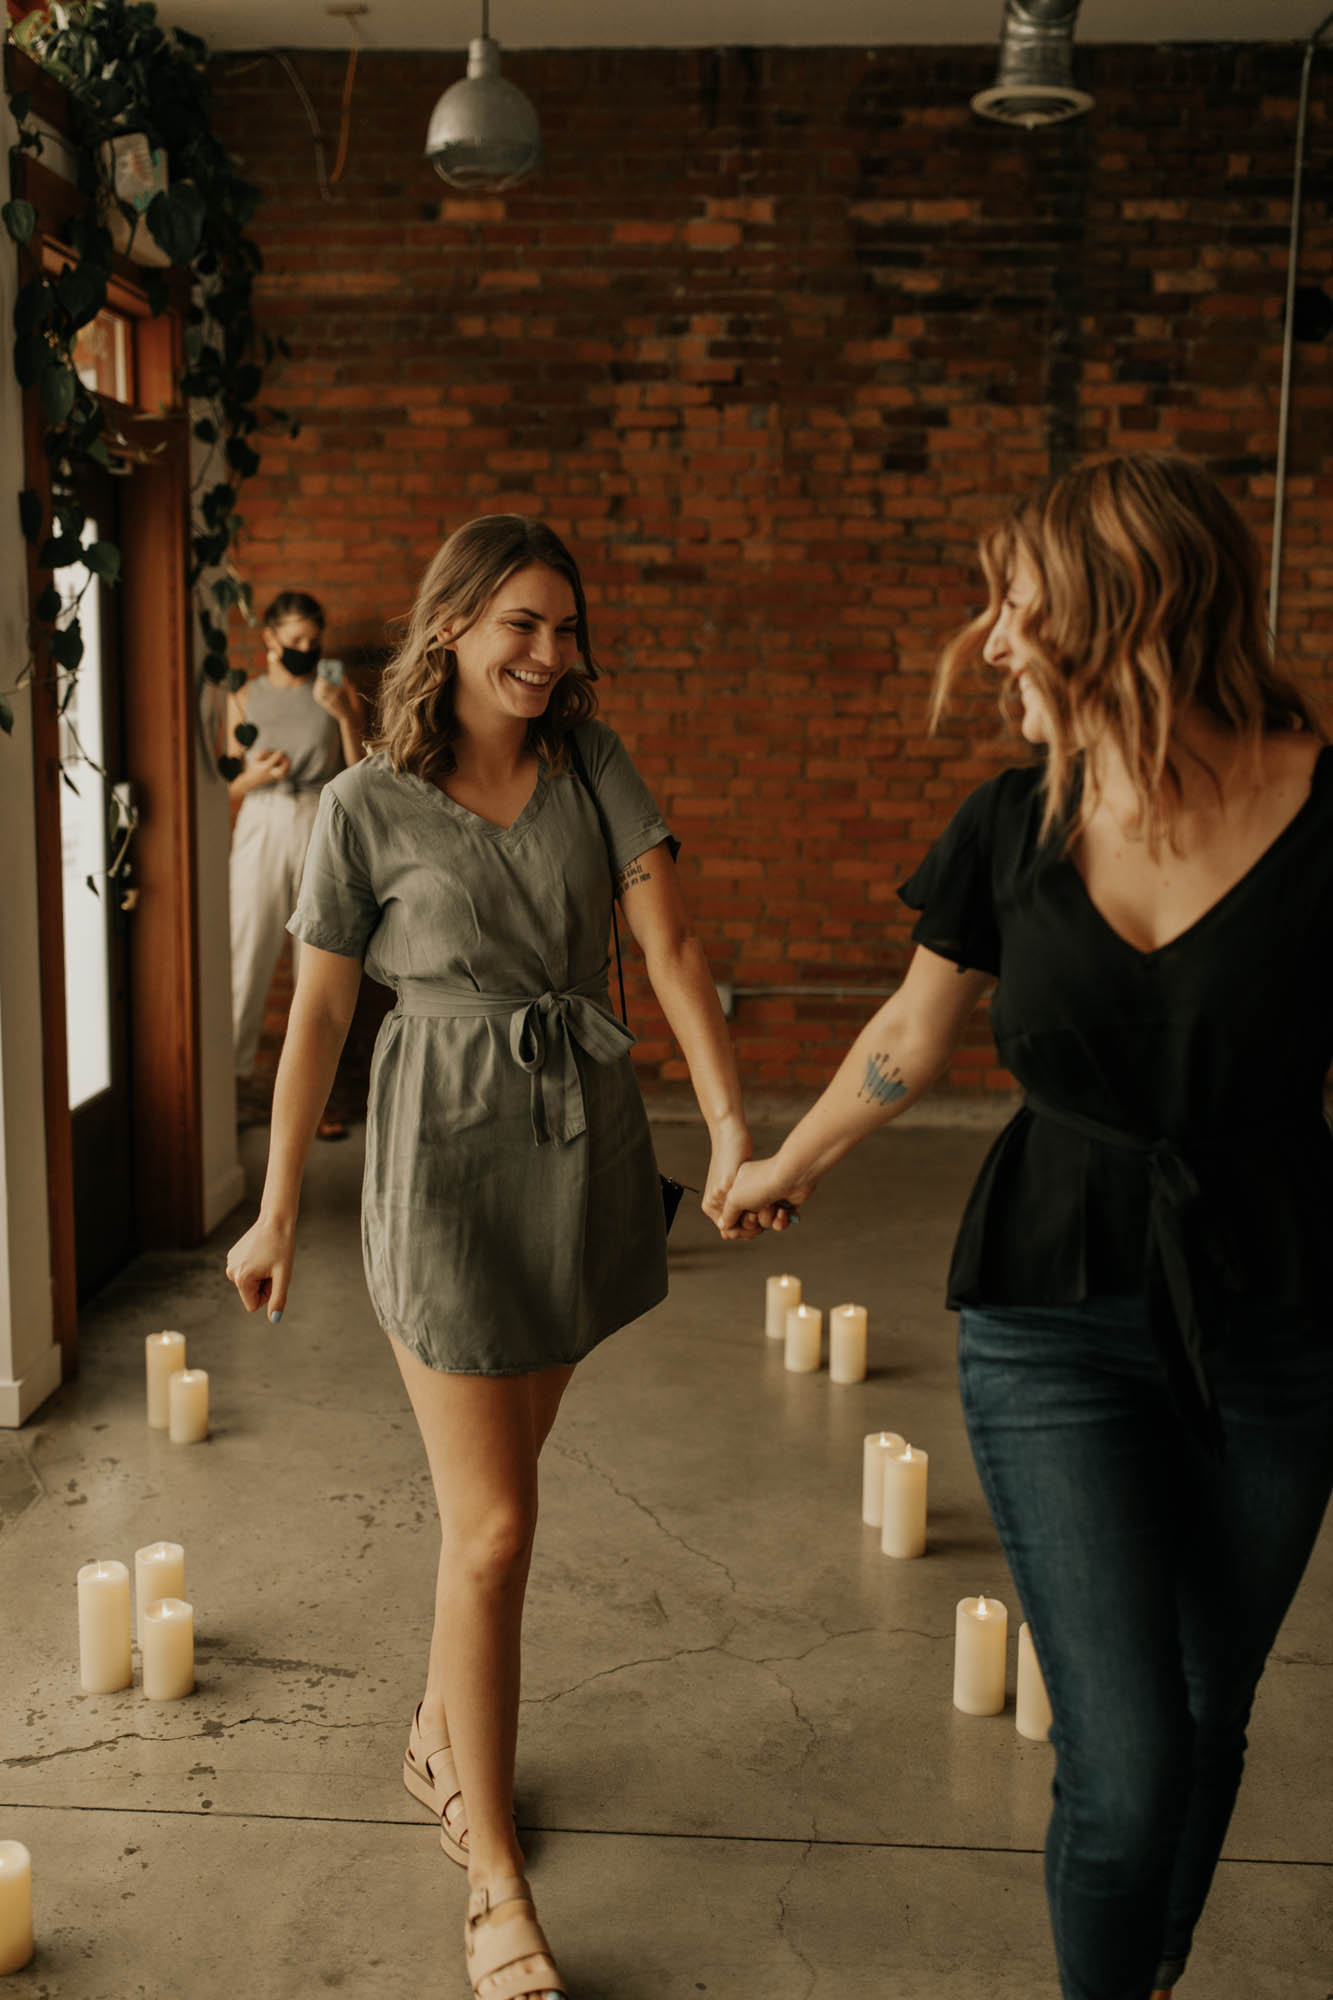 Lesbian Surprise Proposal - Double Engagement - Dancing With Her